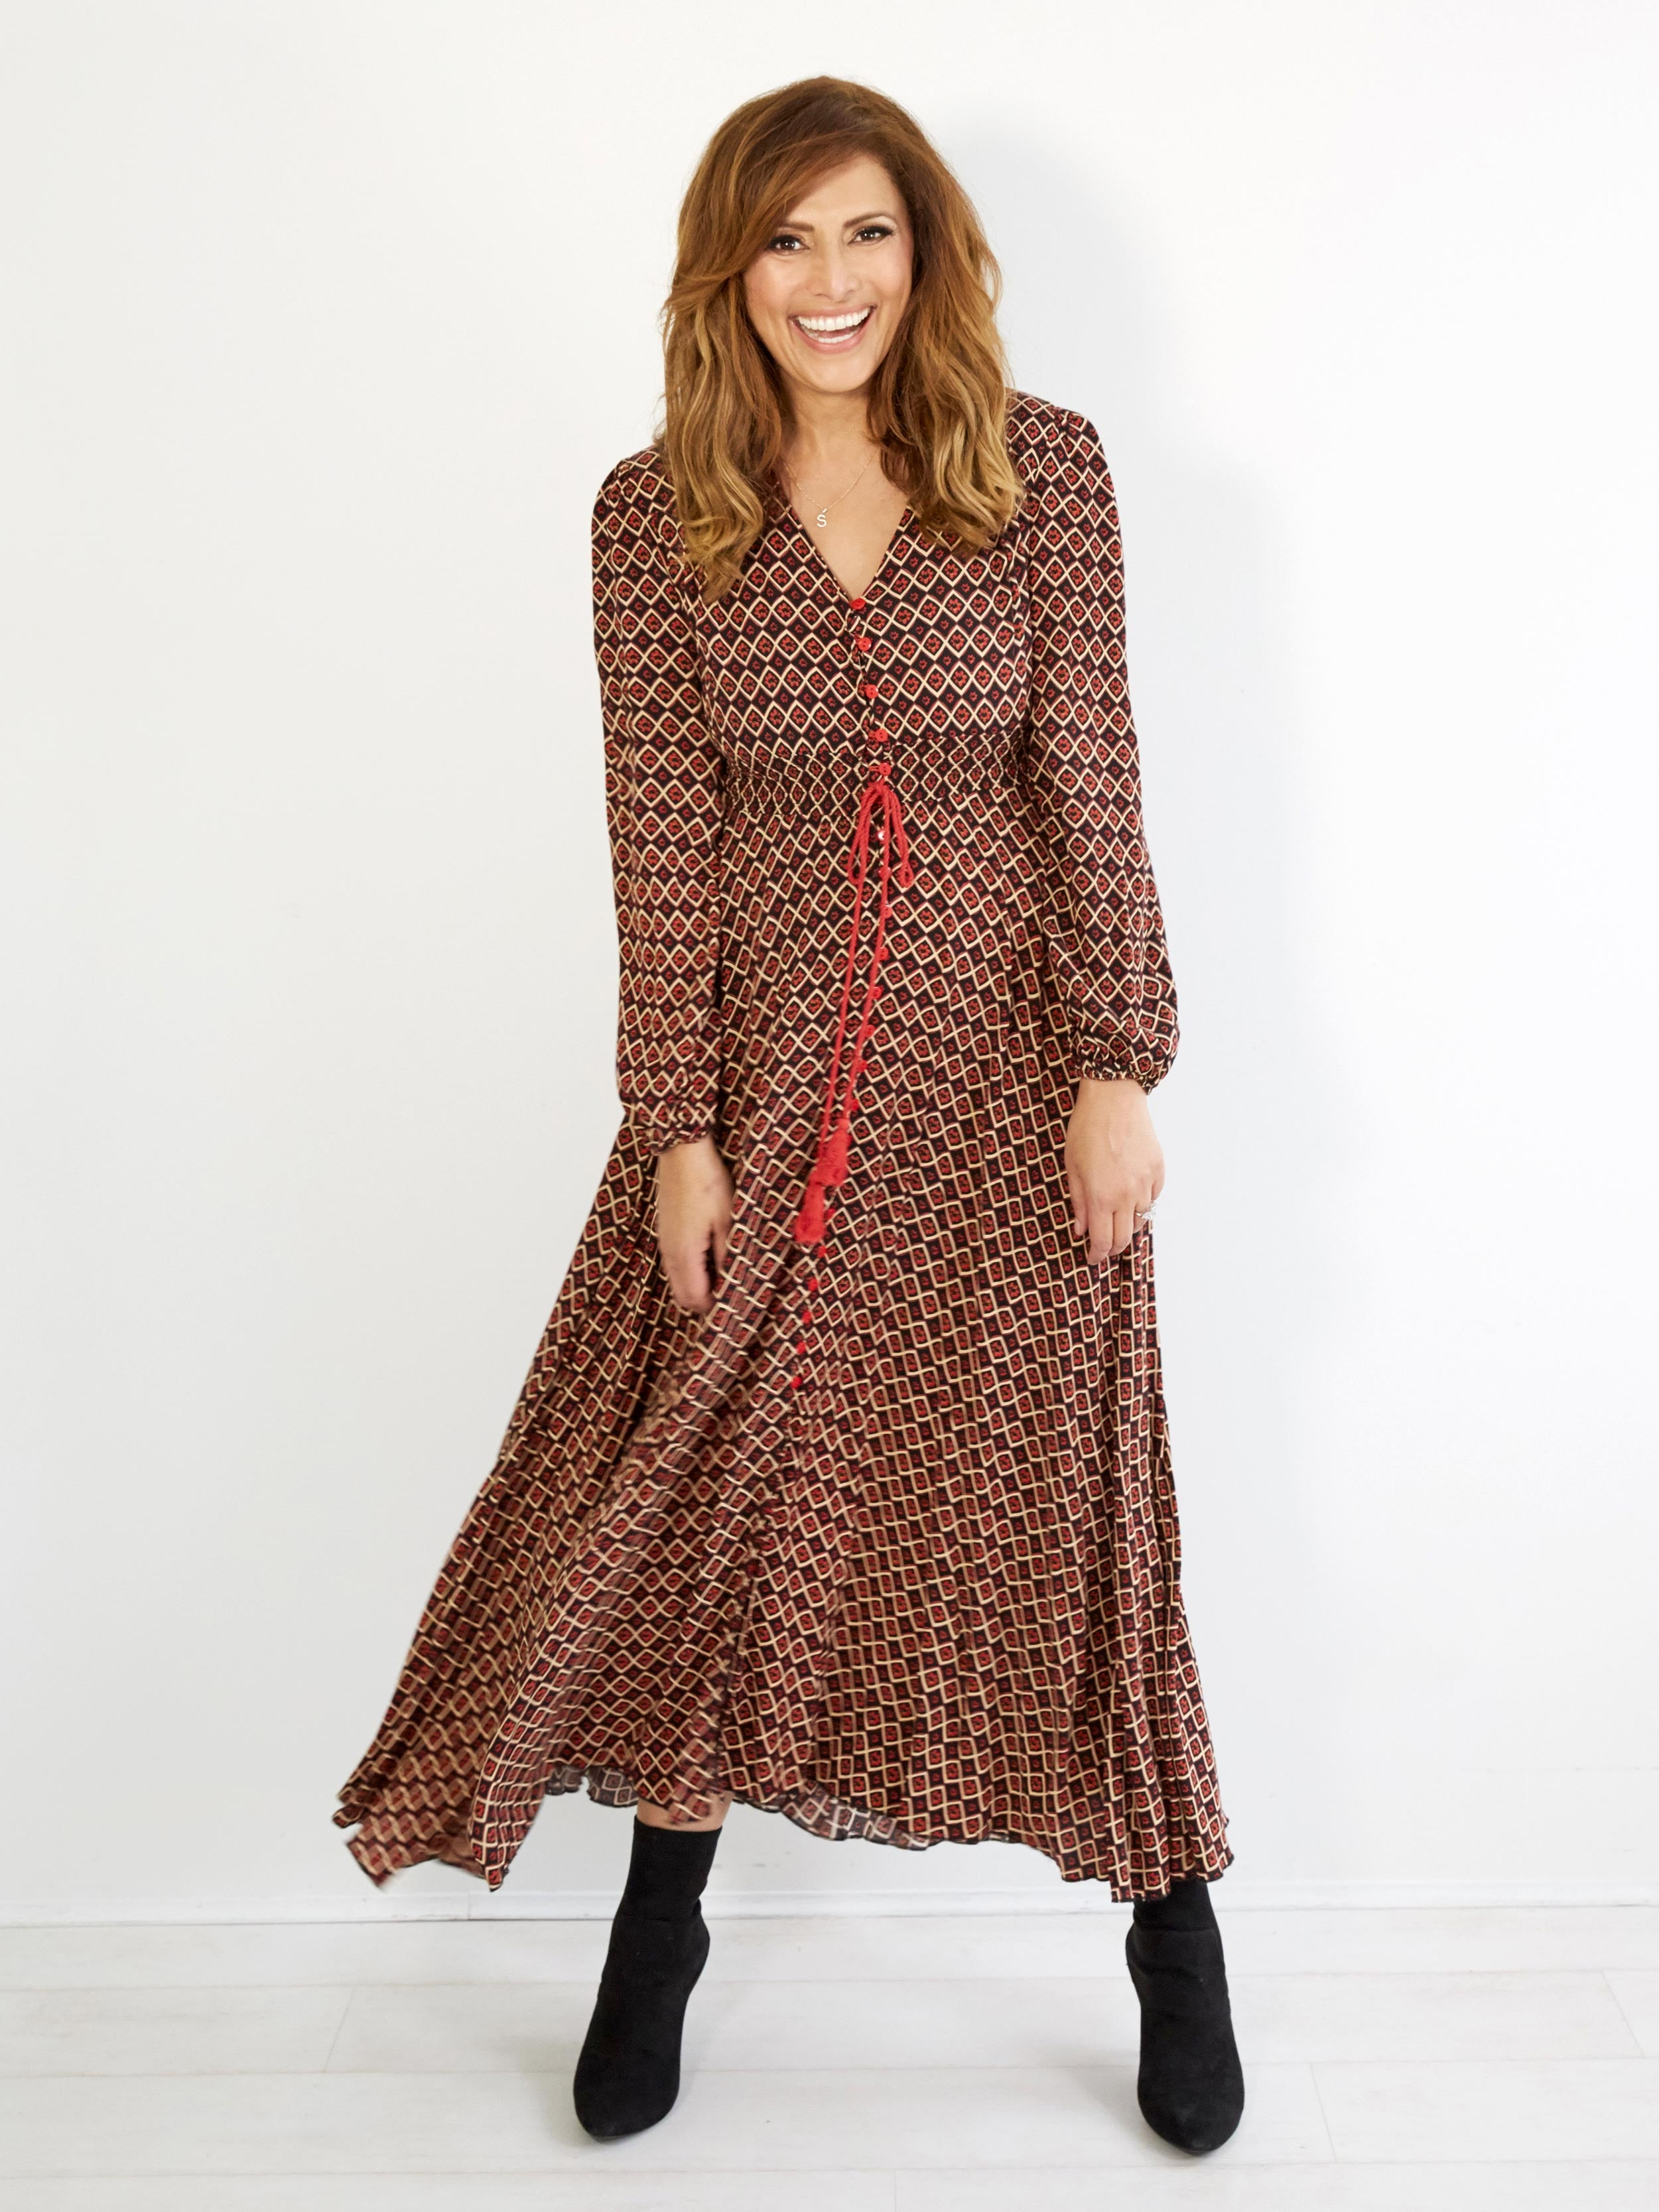 HEARTS OF PARIS BOHO MAXI DRESS